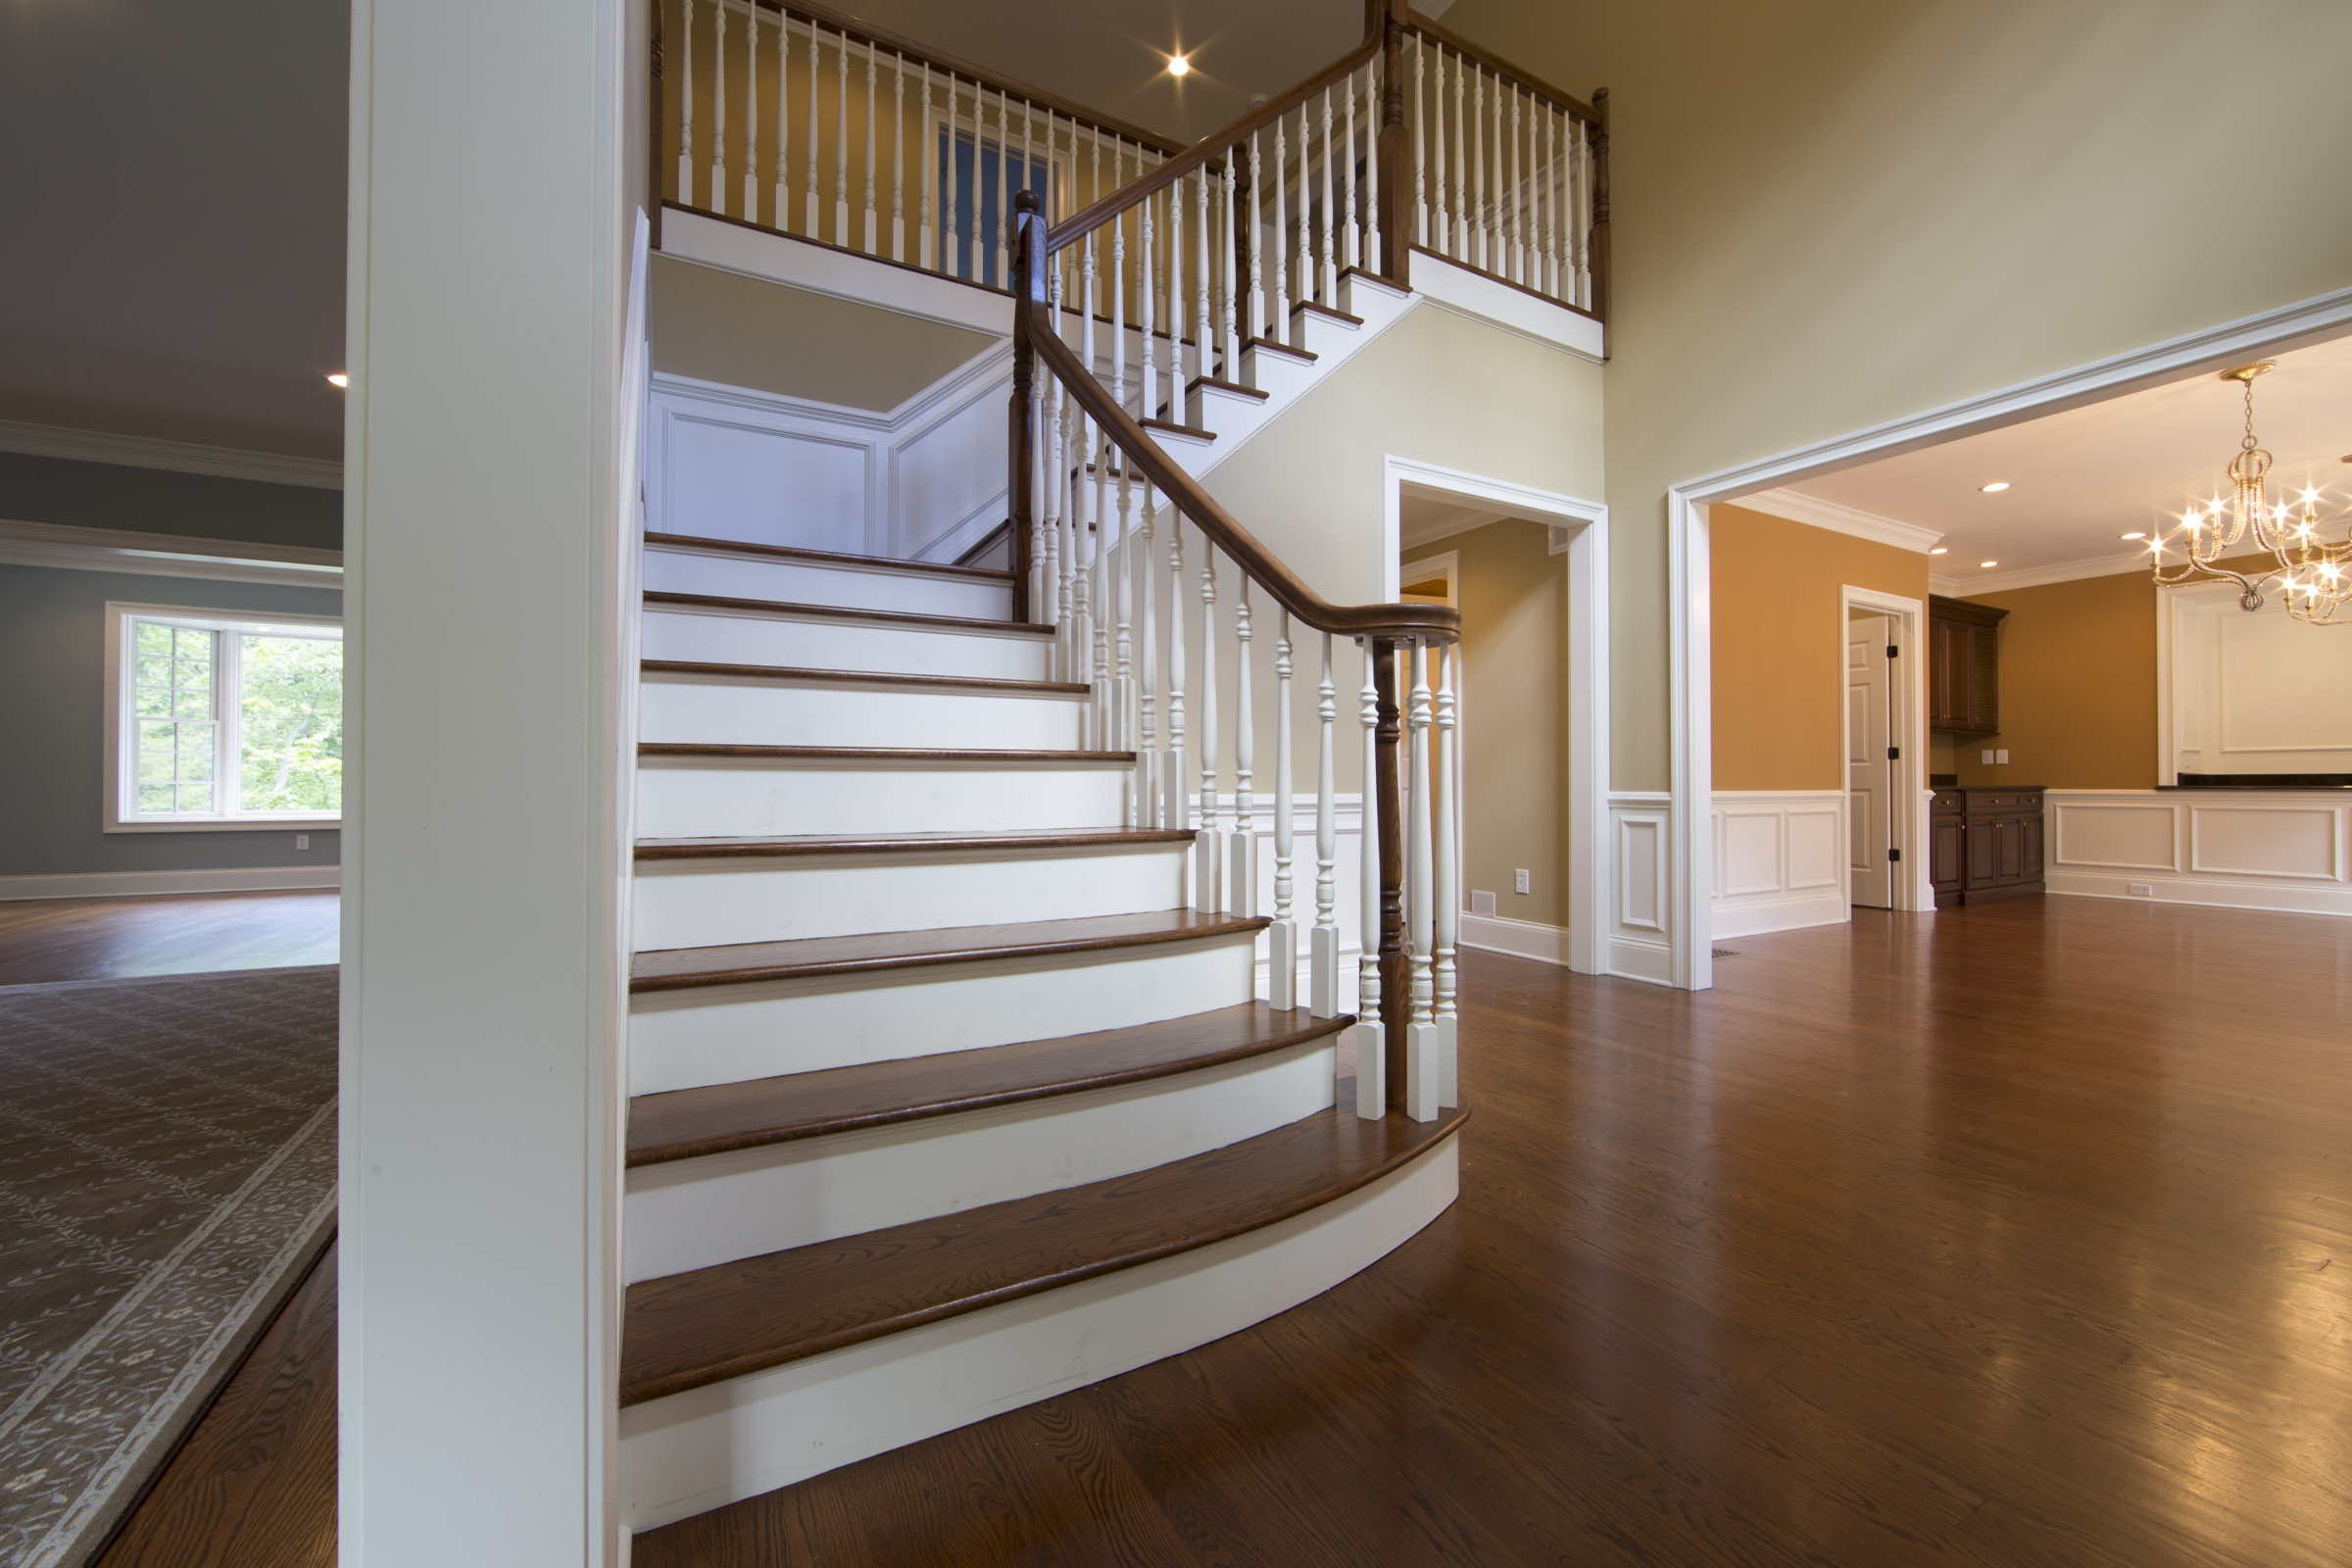 Coyle modular homes foyer and front stairs coyle modular for House plans with stairs in foyer